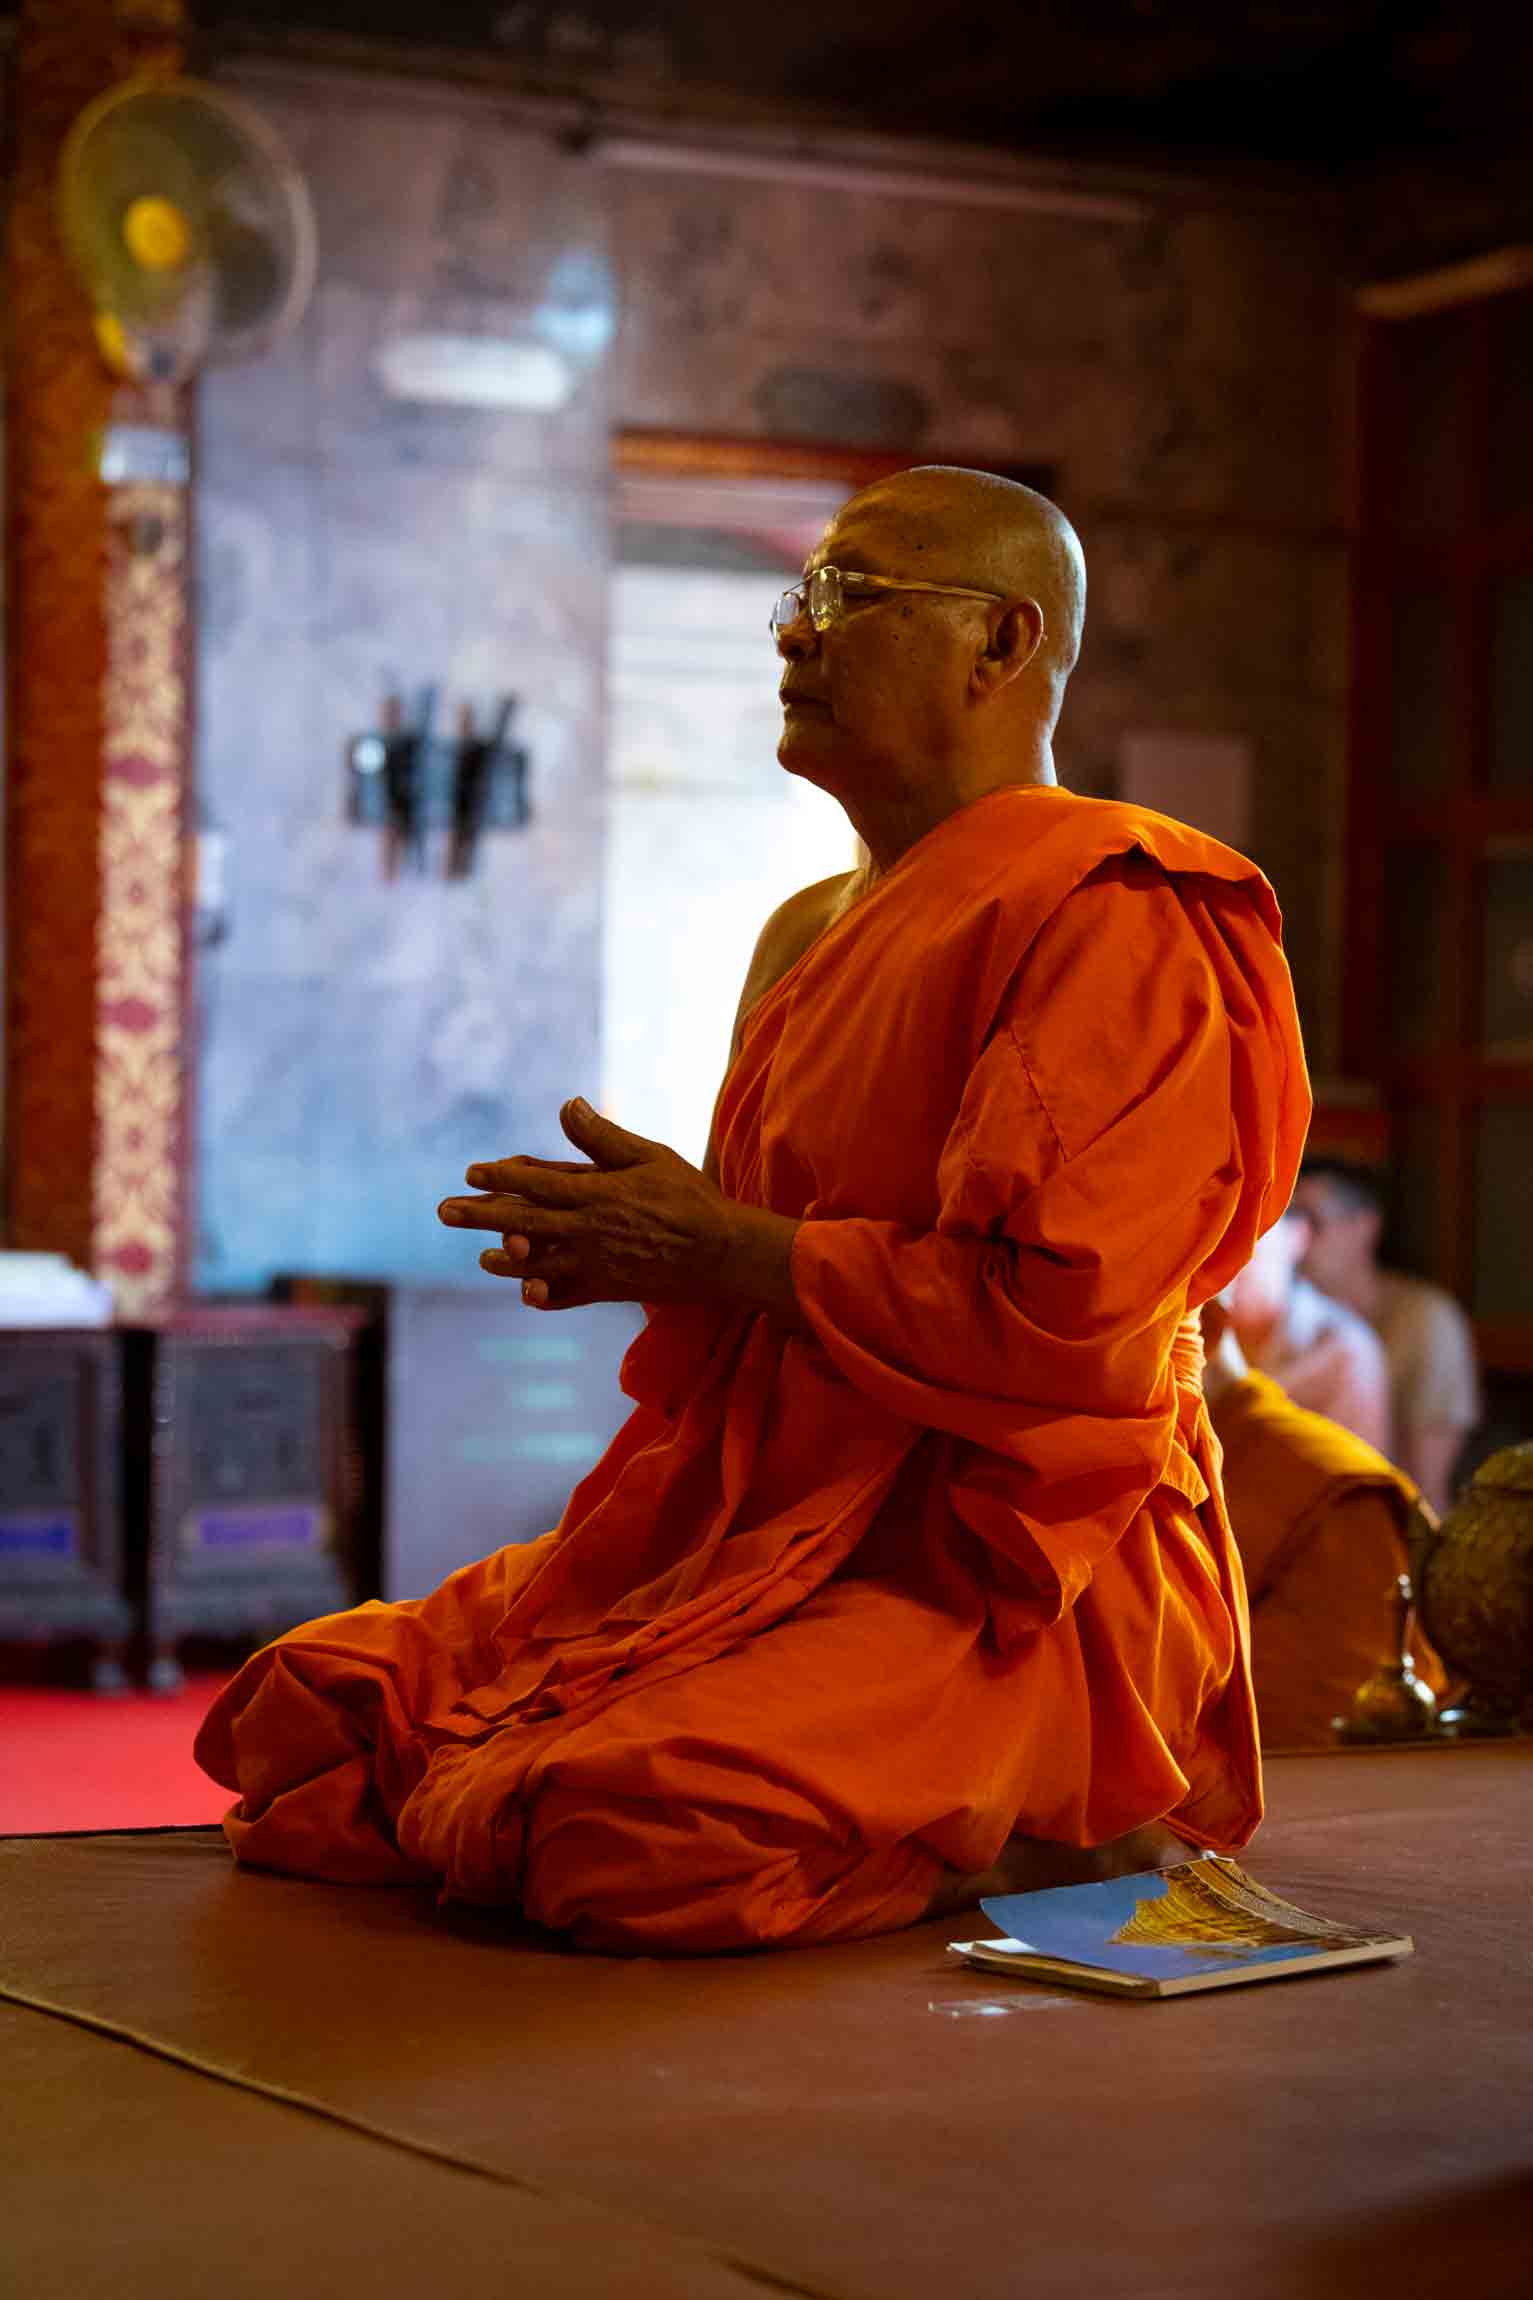 Militant Buddhist monks in Sri Lanka sometimes organize against Christians.